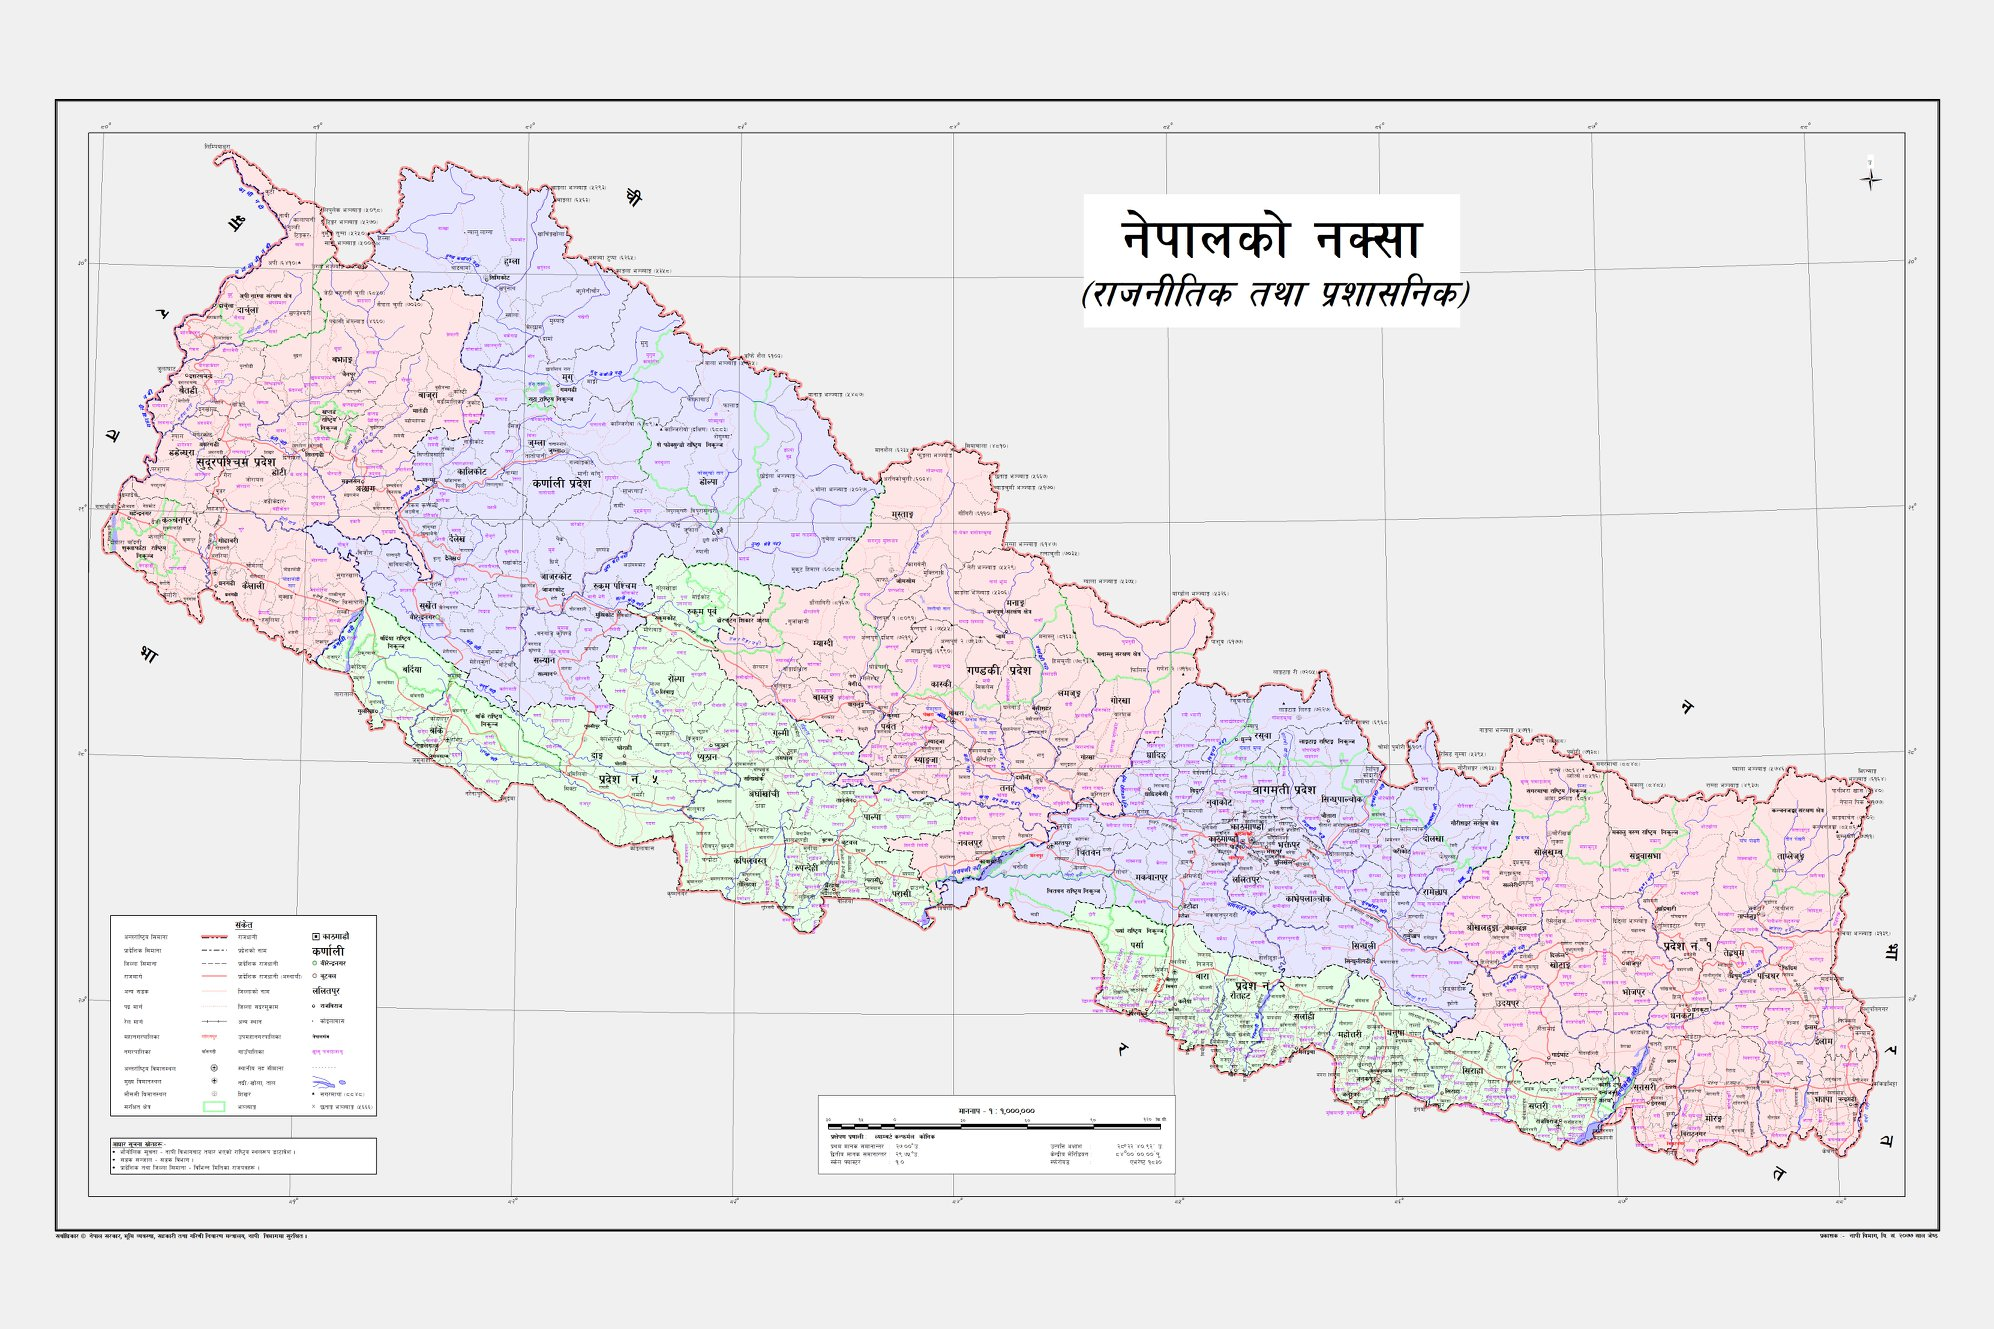 Picture of: Government Unveils New Political Map Including Kalapani Lipulekh And Limpiyadhura Inside Nepal Borders